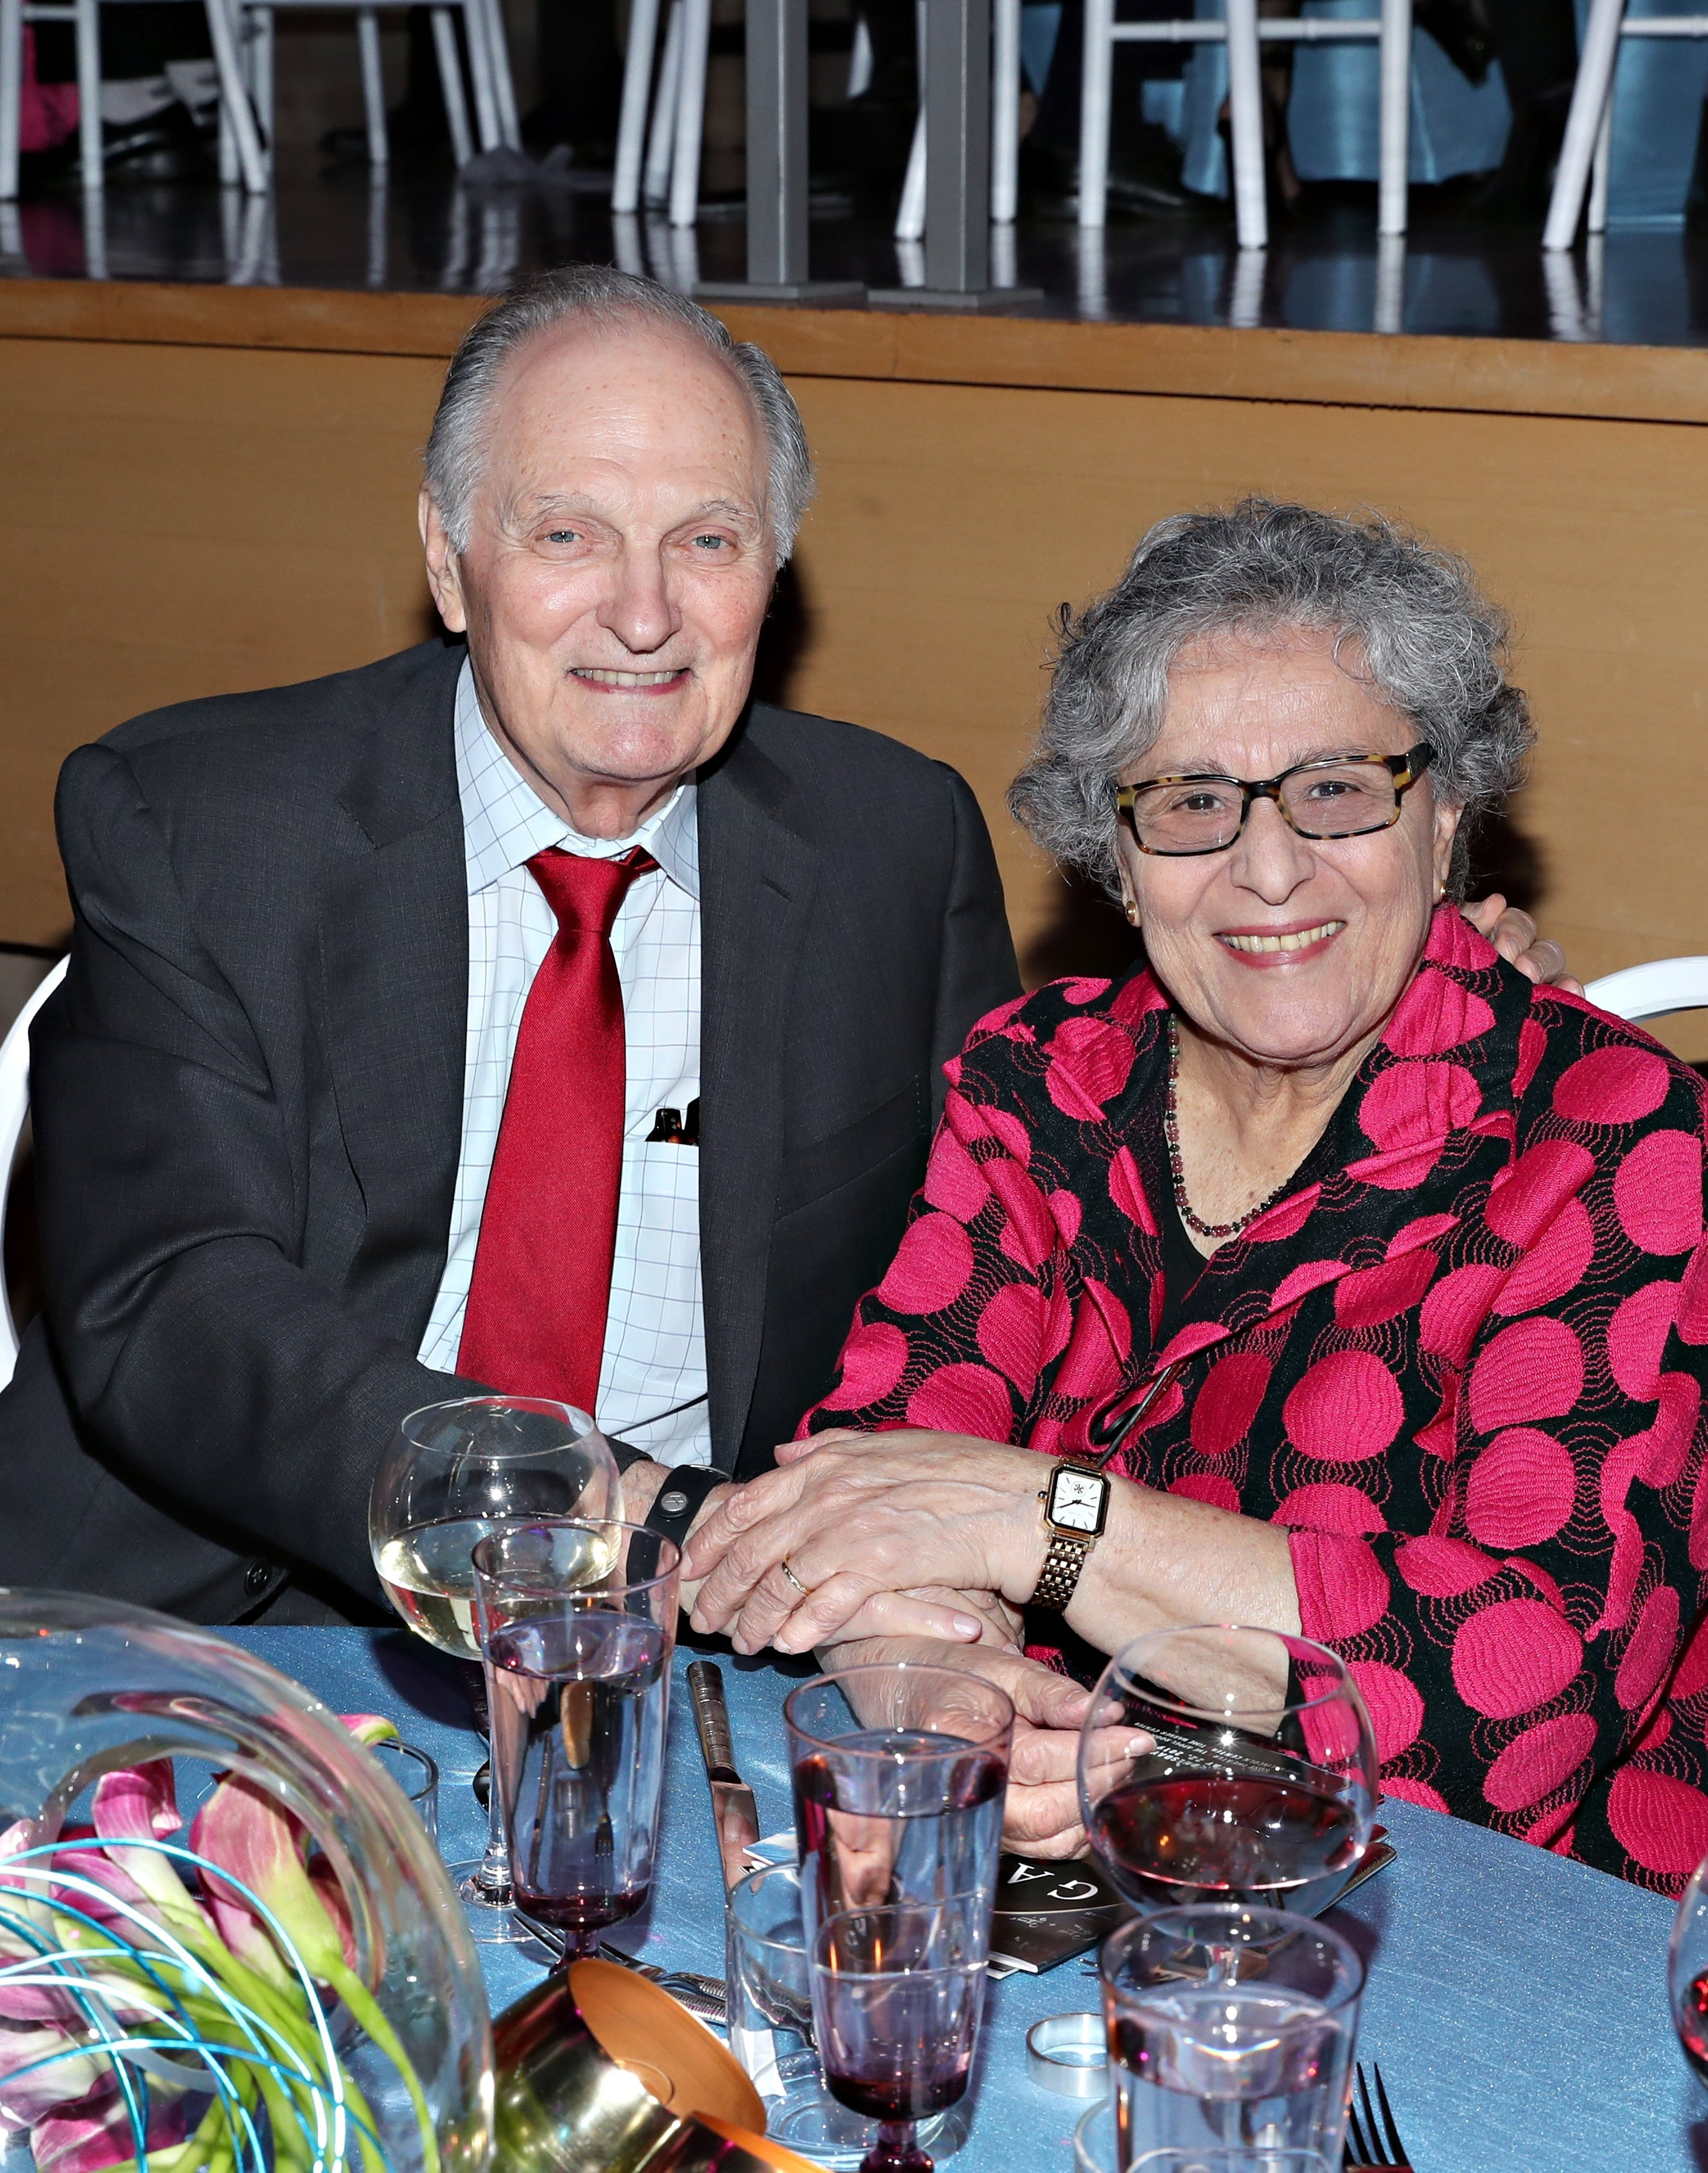 Alan Alda and his wife Arlene Alda attend the World Science Festival's Annual Gala in New York City on May 22, 2019 | Photo: Getty Images